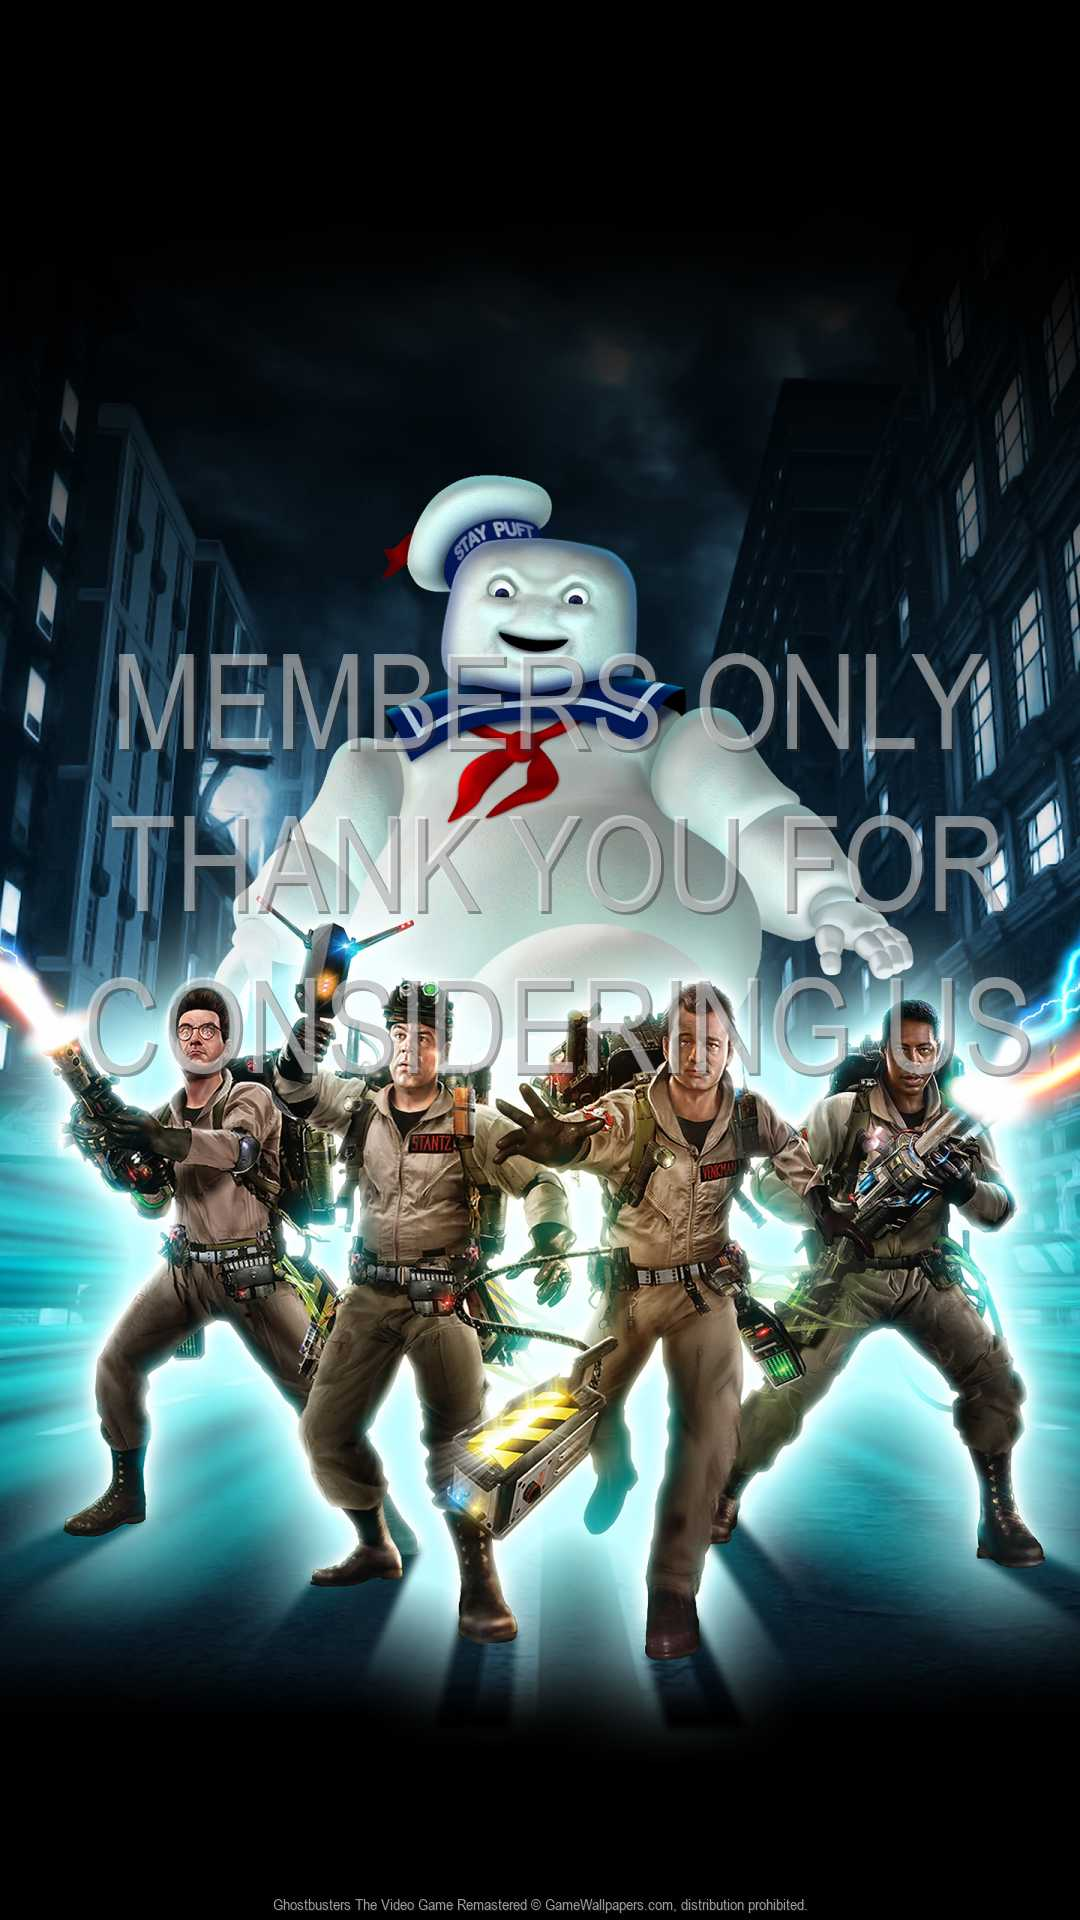 Ghostbusters: The Video Game Remastered 1080p Vertical Mobile fond d'écran 01